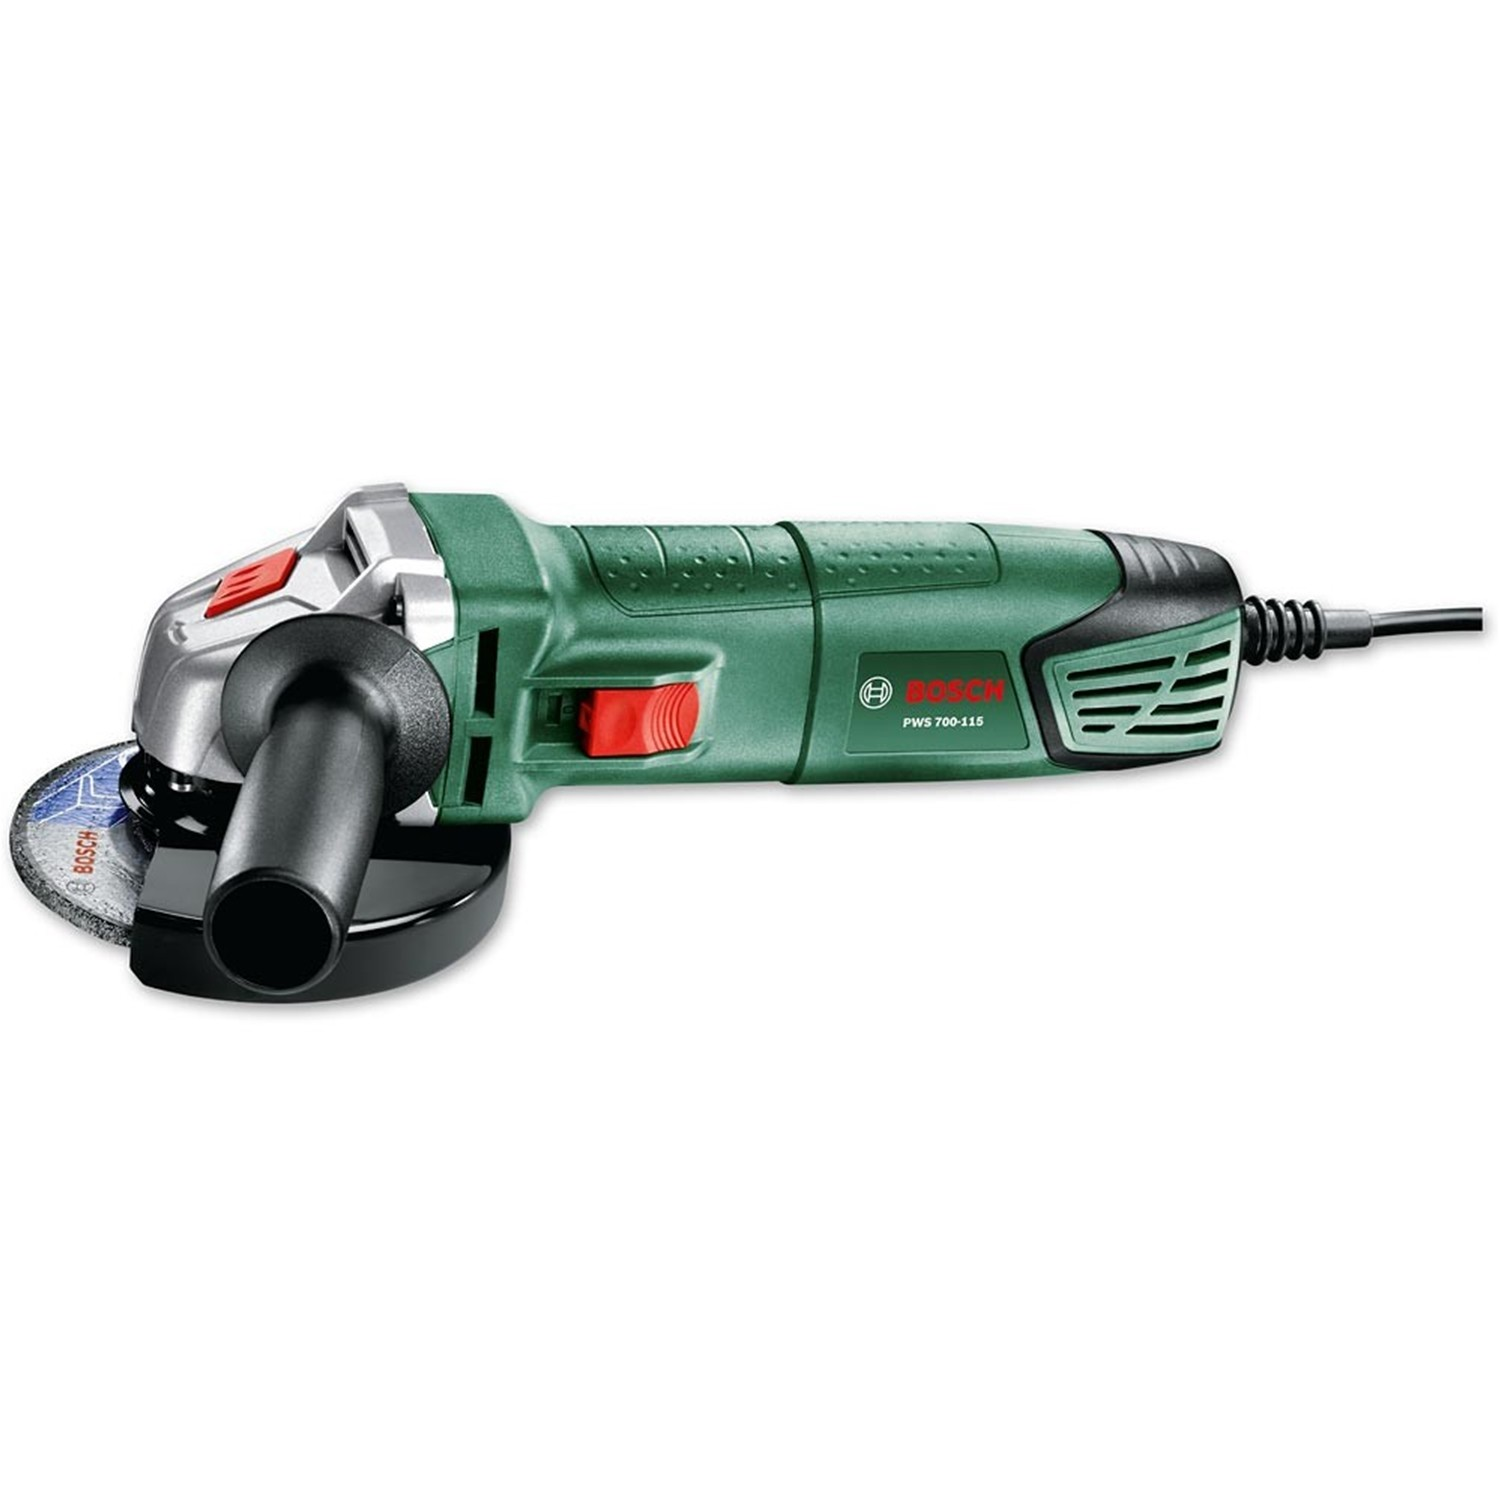 bosch psw700 angle grinder leekes. Black Bedroom Furniture Sets. Home Design Ideas